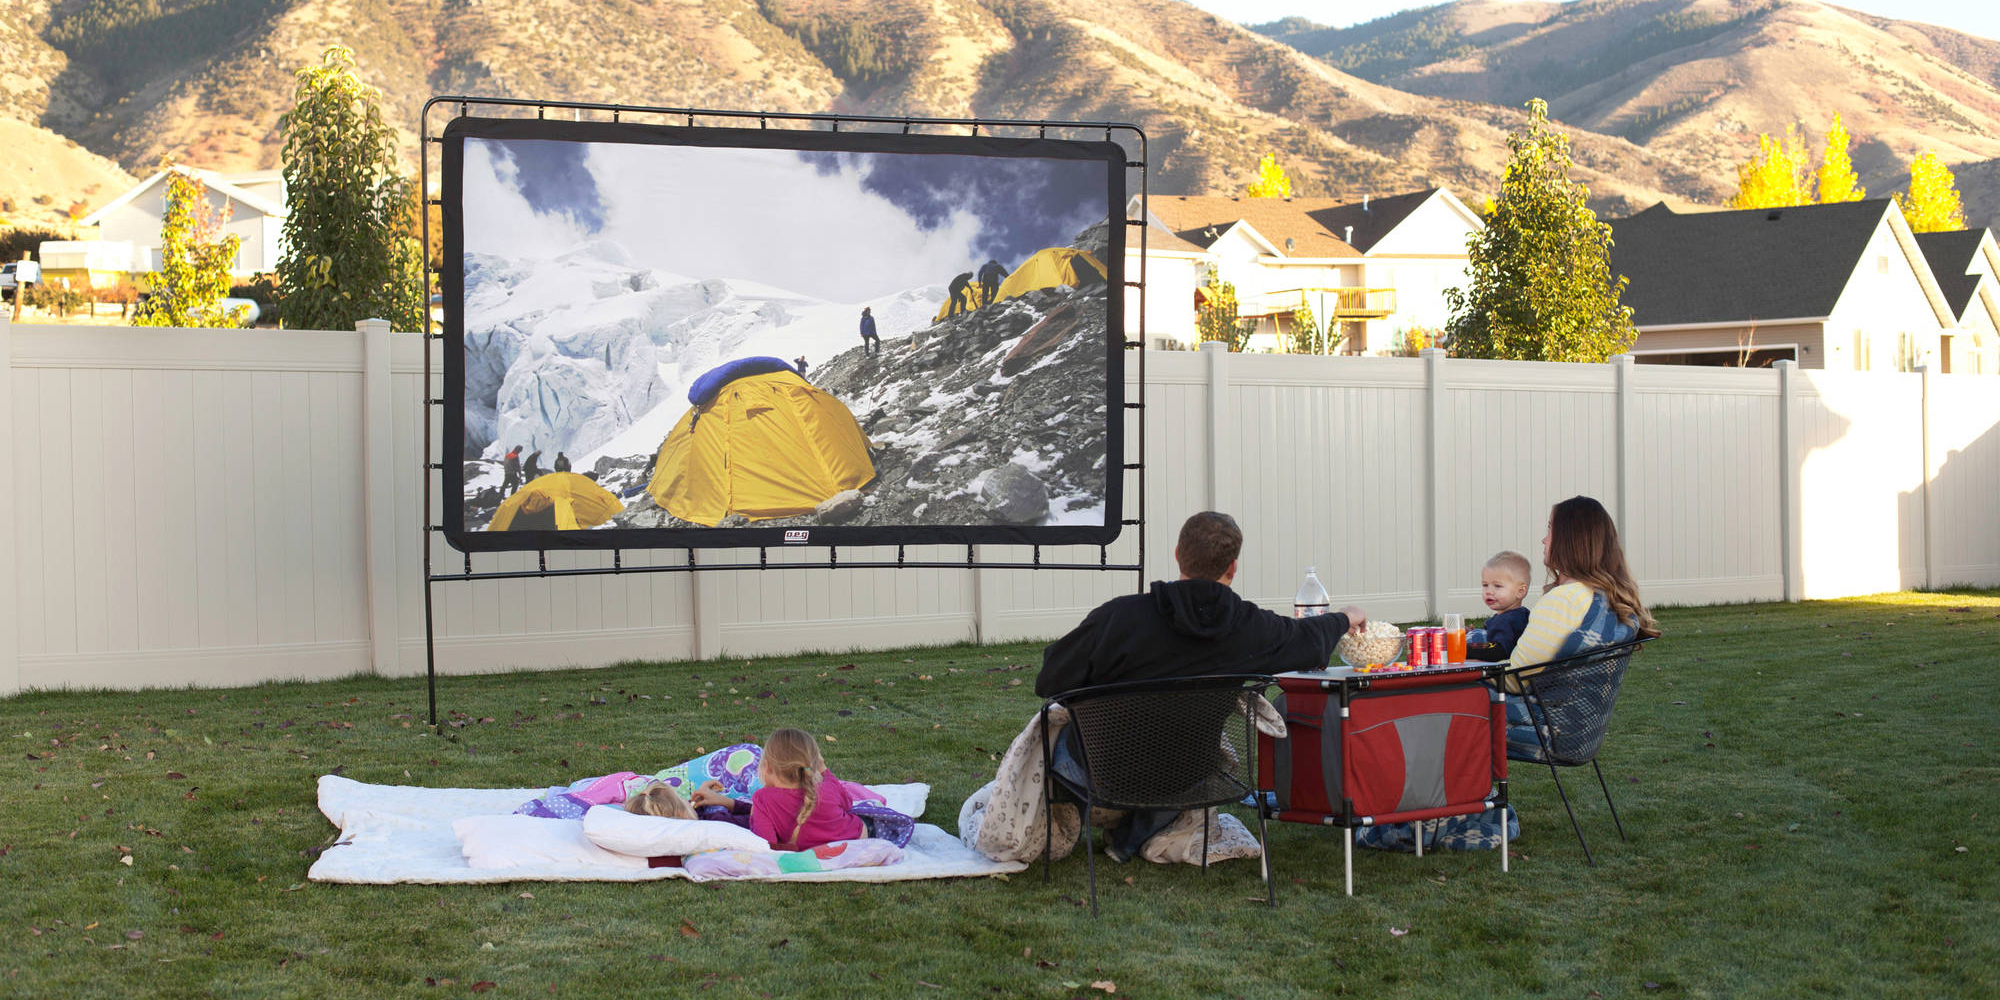 Camp Chef 144-inch Indoor/Outdoor HD Movie Screen for $129 (Reg. $180+)